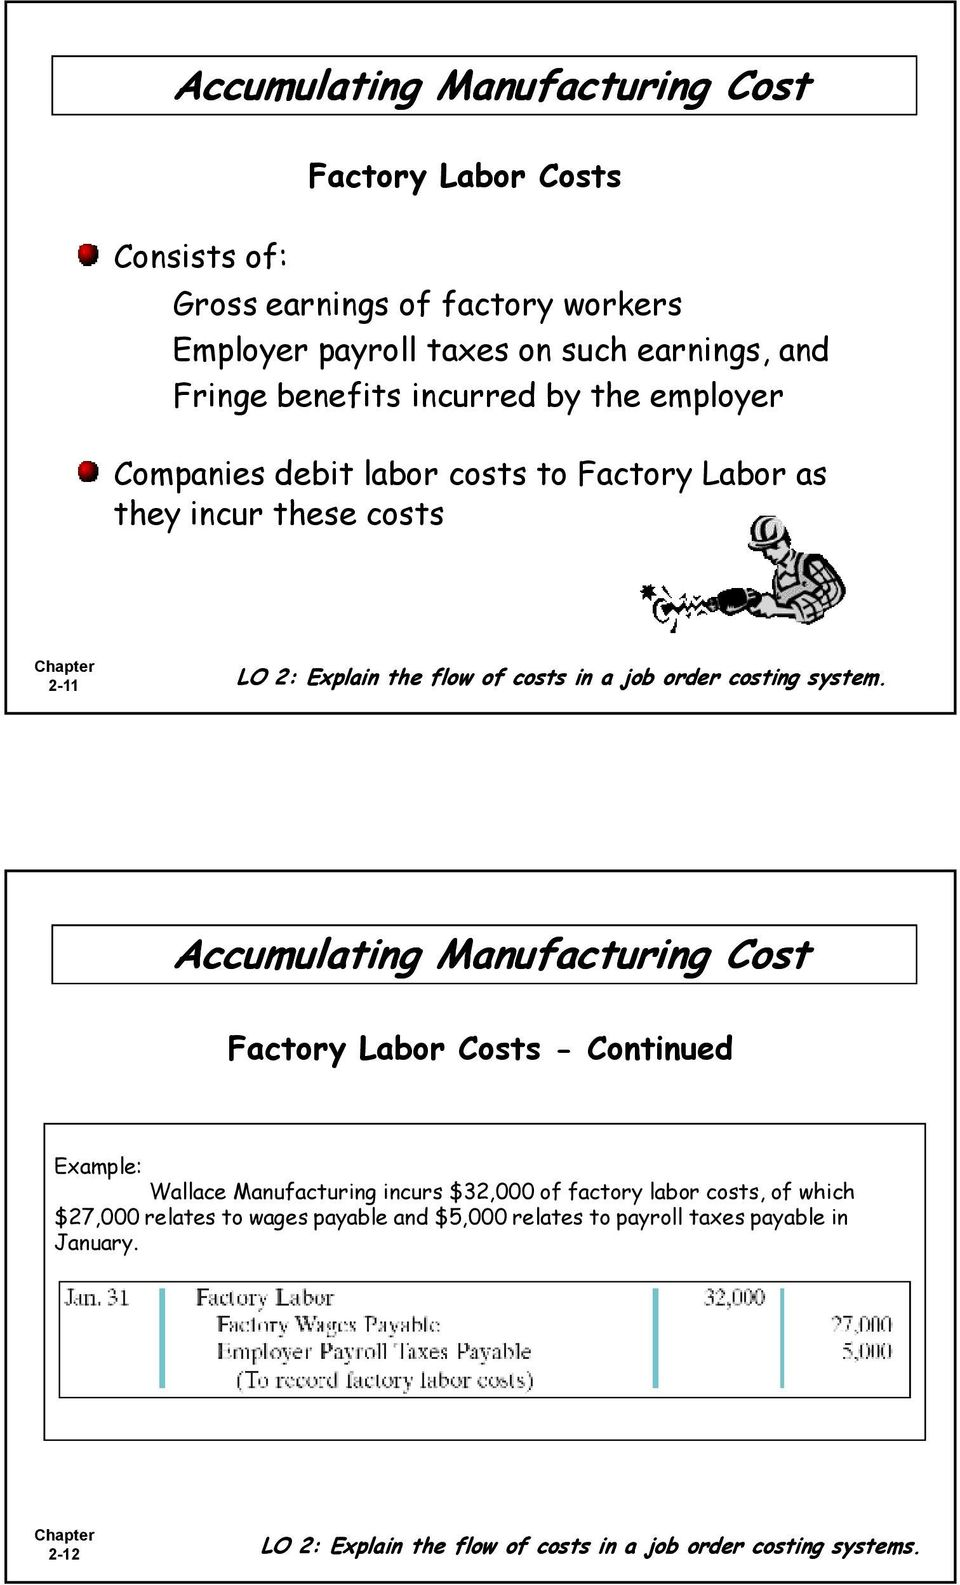 order costing system.